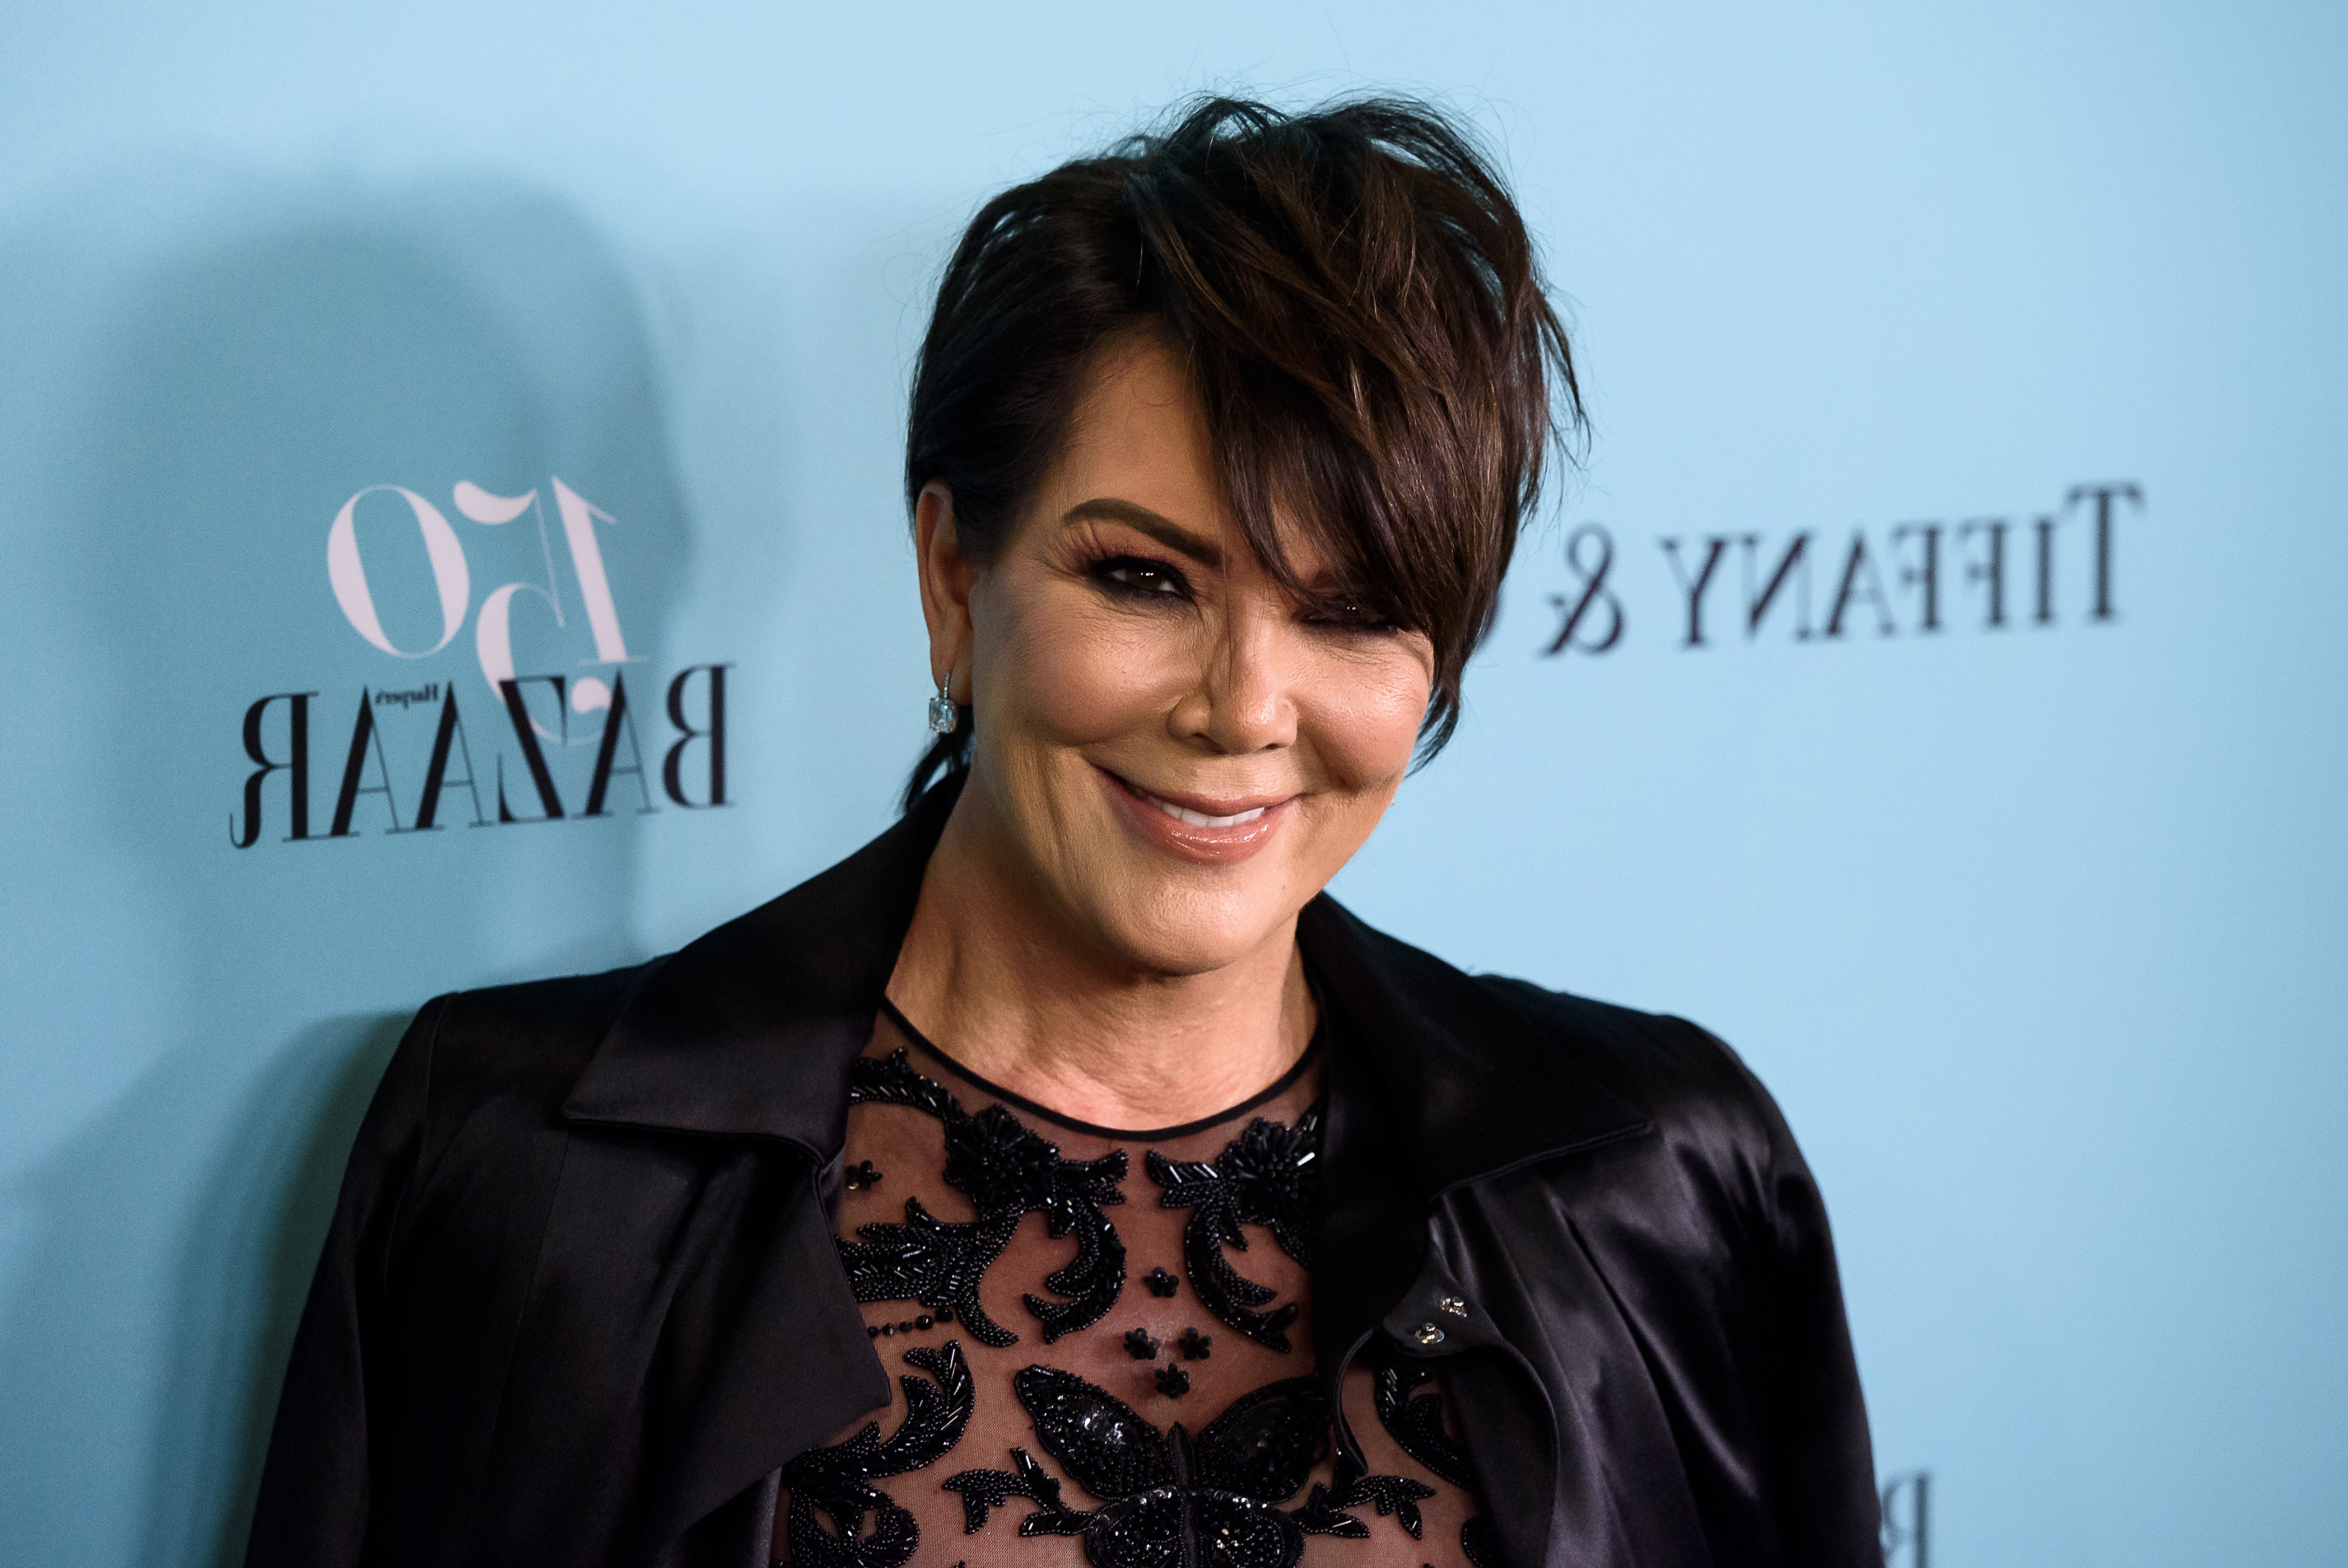 Kris Kardashian Hairstyles   Best Hairstyles And Haircuts For Women Within Kris Jenner Short Hairstyles (View 20 of 25)